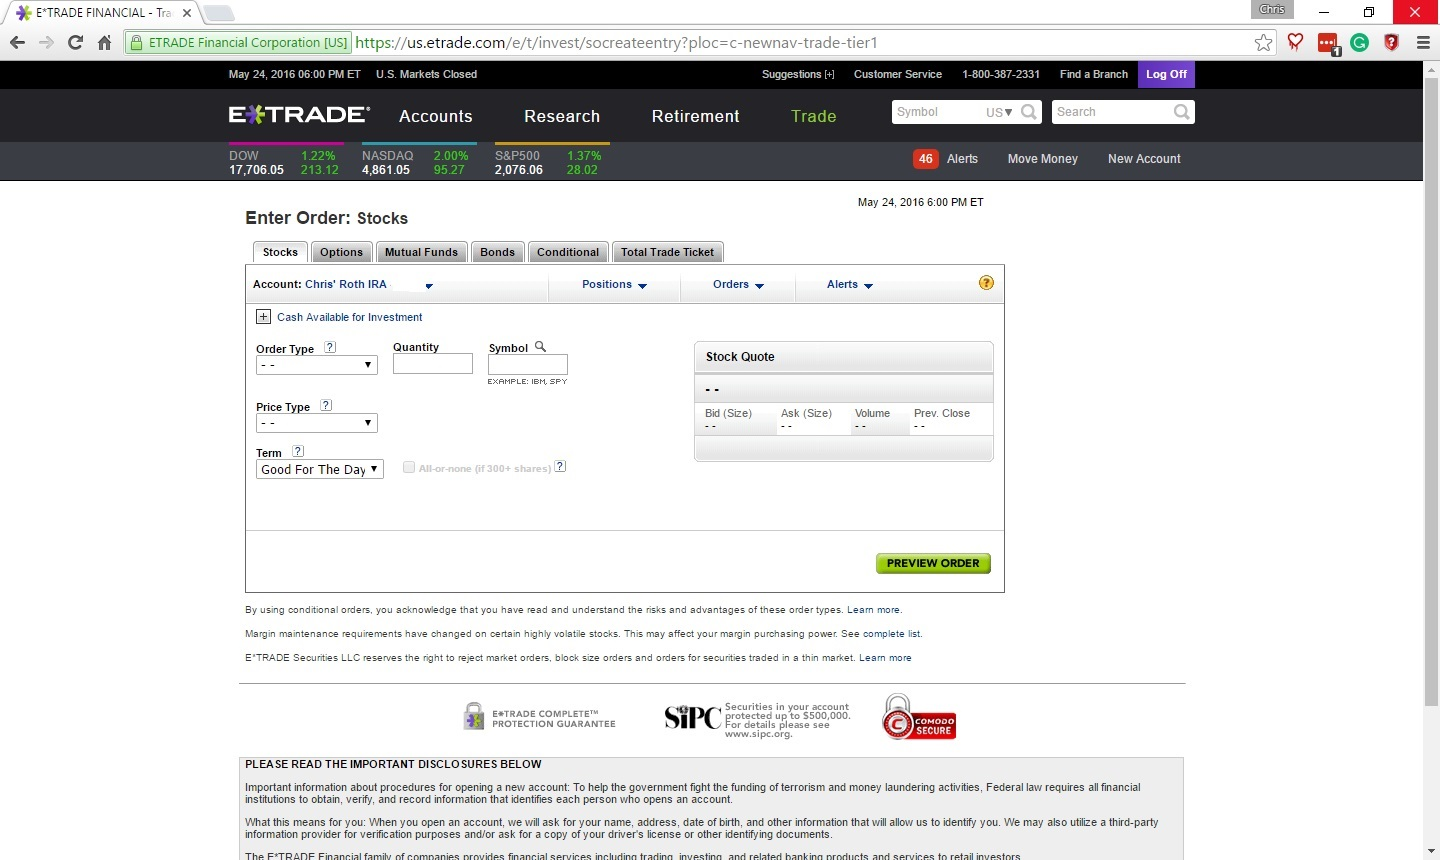 Trading stock options on etrade